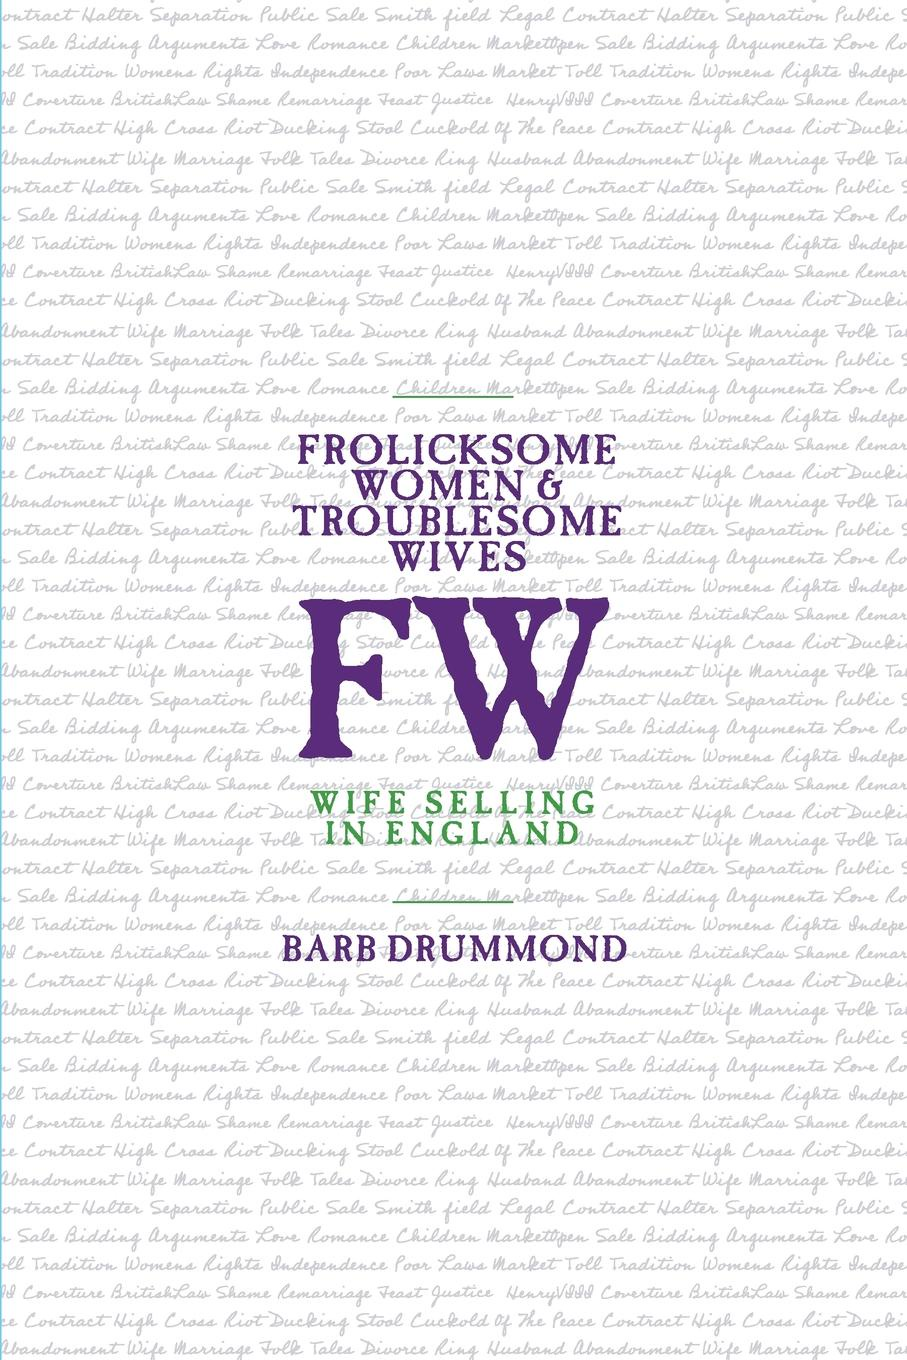 Barb Drummond Frolicksome Women . Troublesome Wives. Wife Selling in England